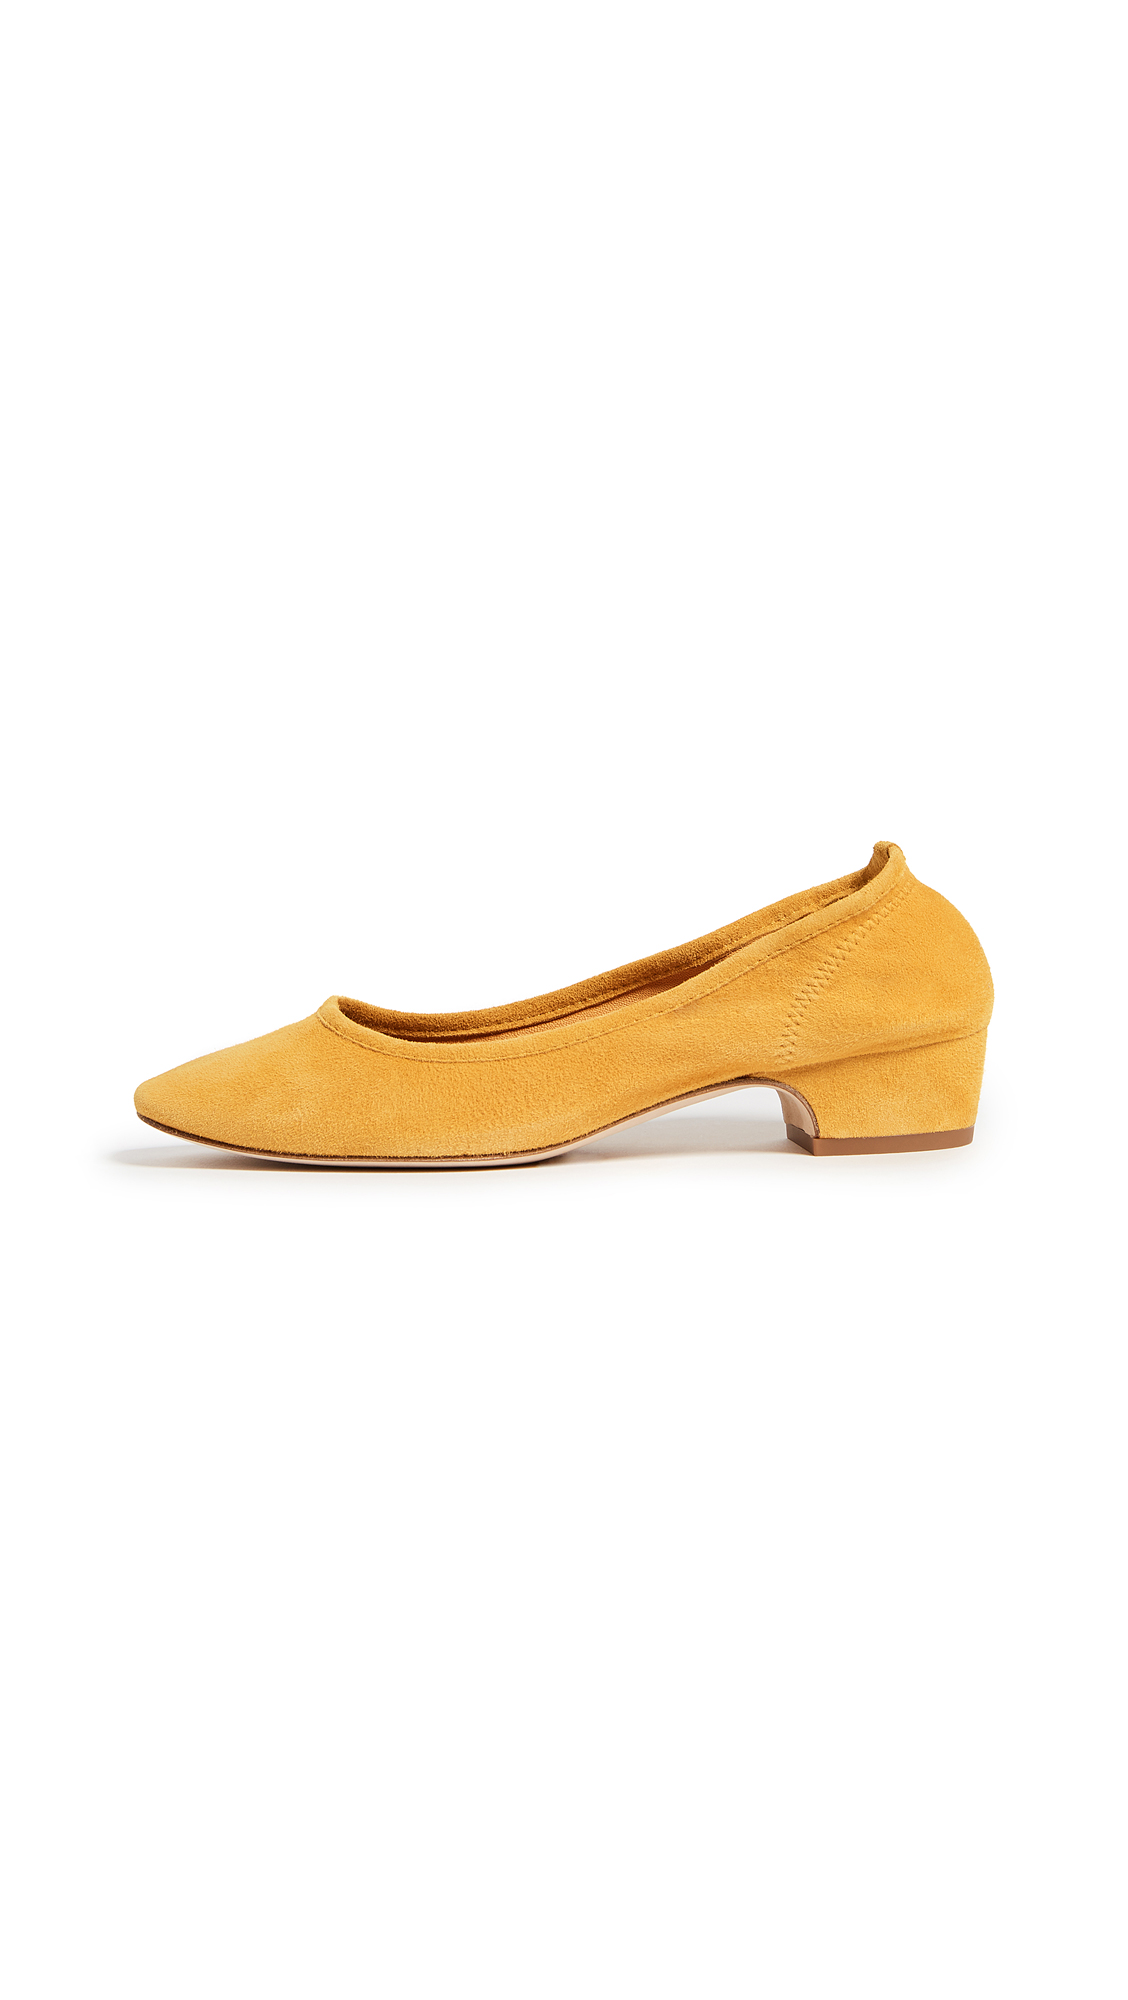 Miista Kila Suede Shoes - Sun Yellow